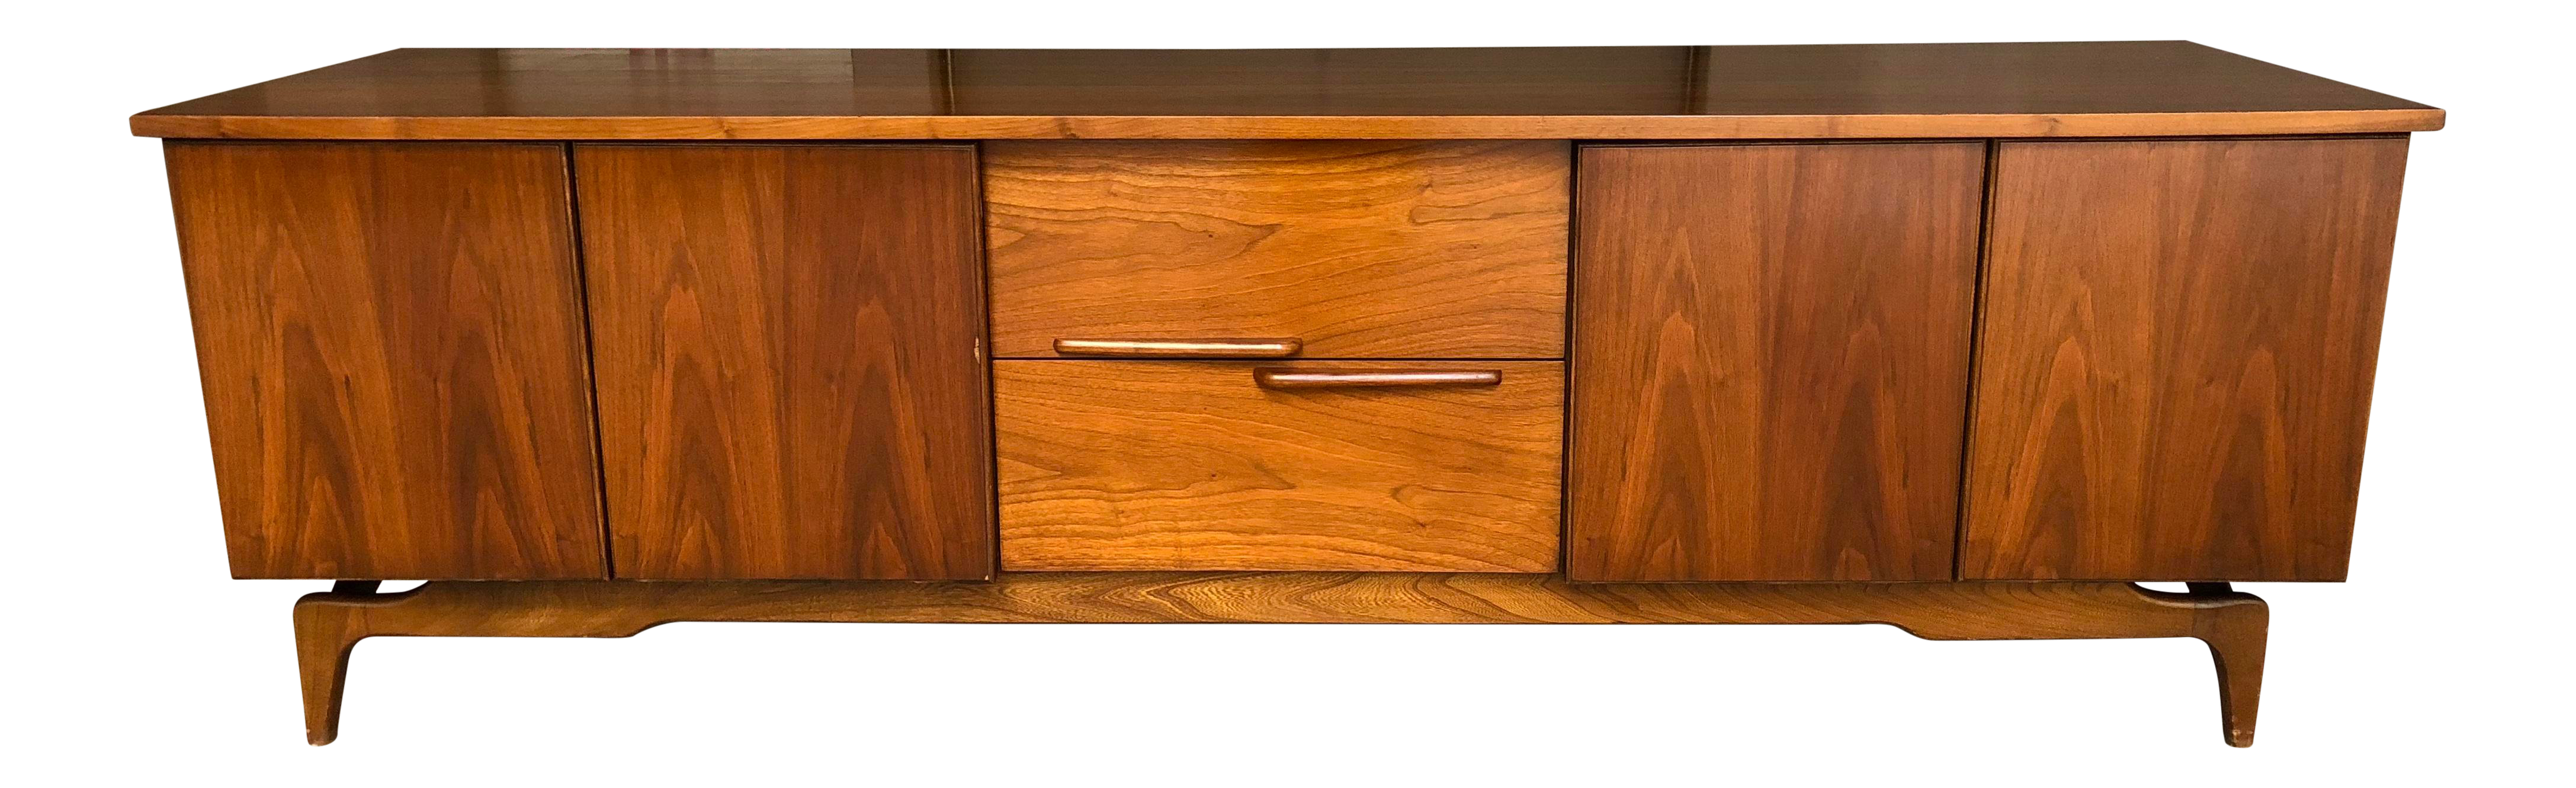 Mid Century Modern Walnut Credenza Sideboard Storage Cabinet Media Console    Young Mfg. Co. Danish Style Lowboy